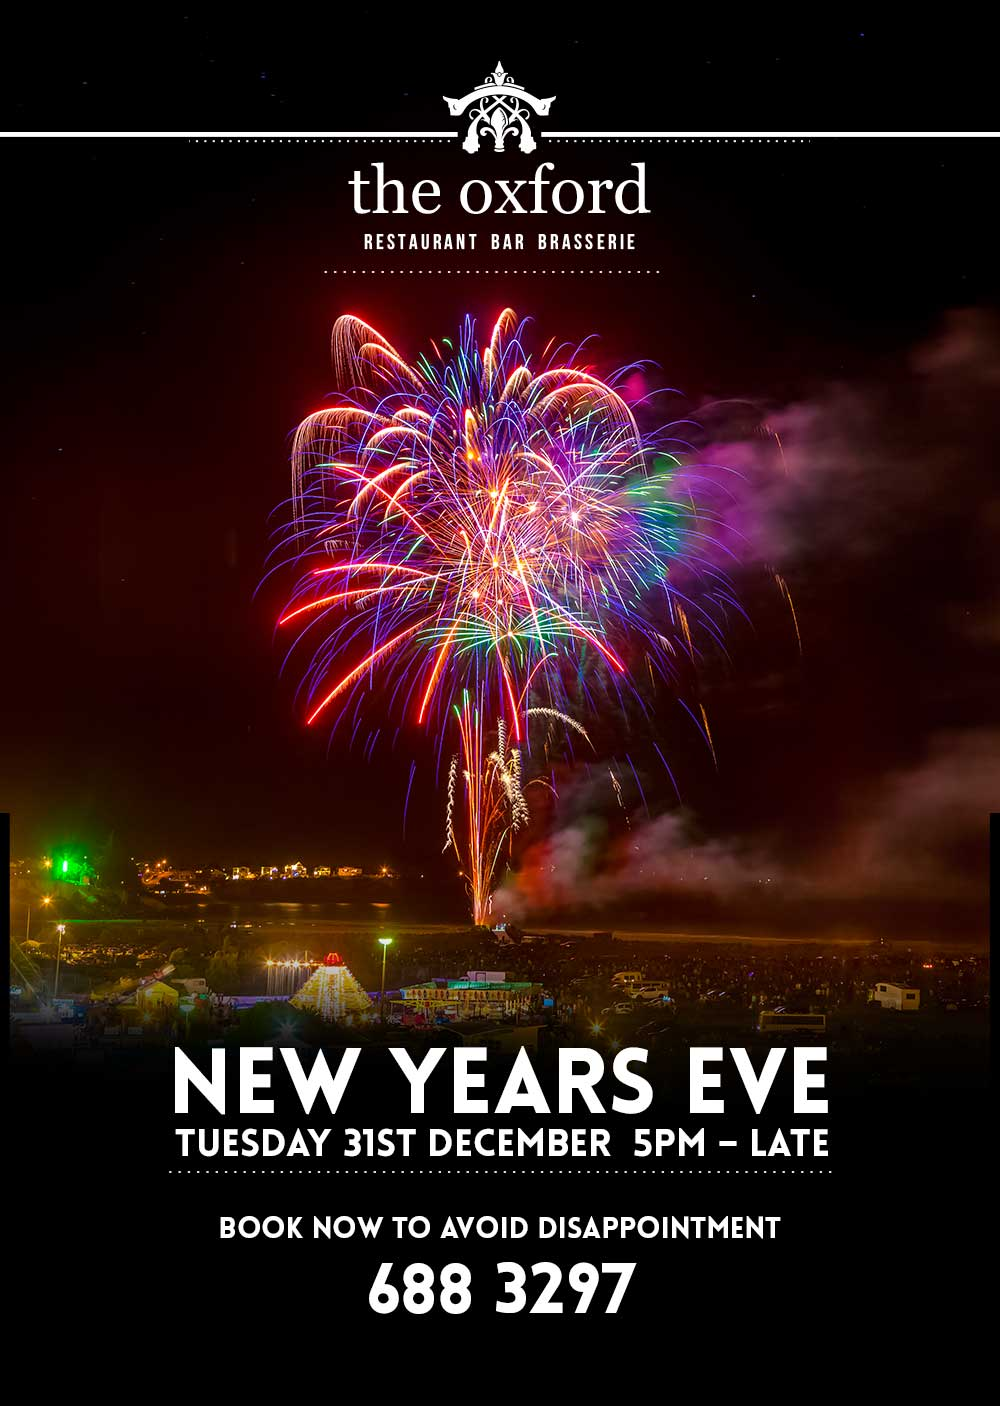 Dine New Years Eve 2019 at the Oxford